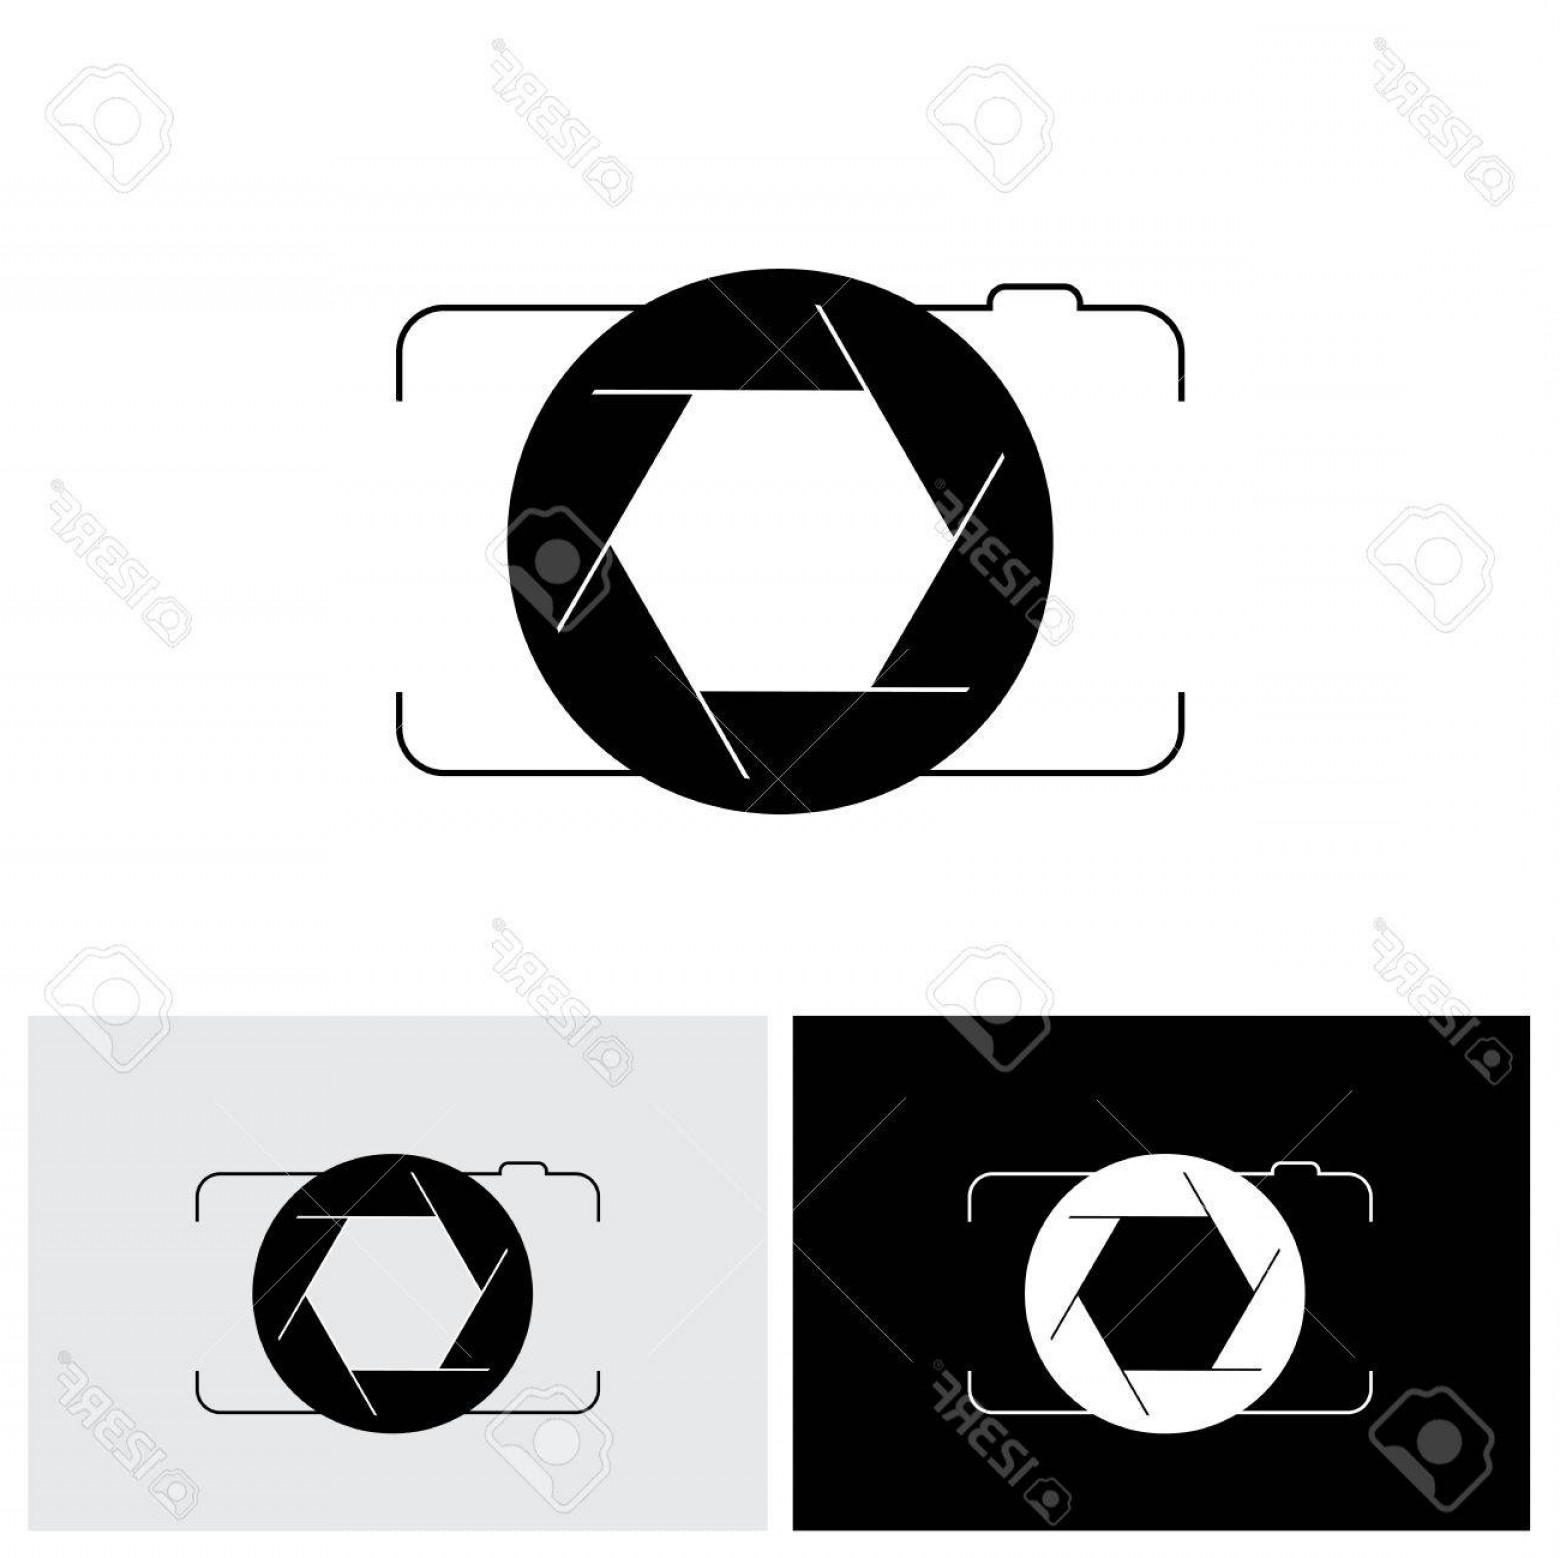 Camera Outline Vector Graphic: Photostock Vector Abstract Digital Camera Shutter Icon Outline Front View This Vector Graphic Is Simple Vector Represe